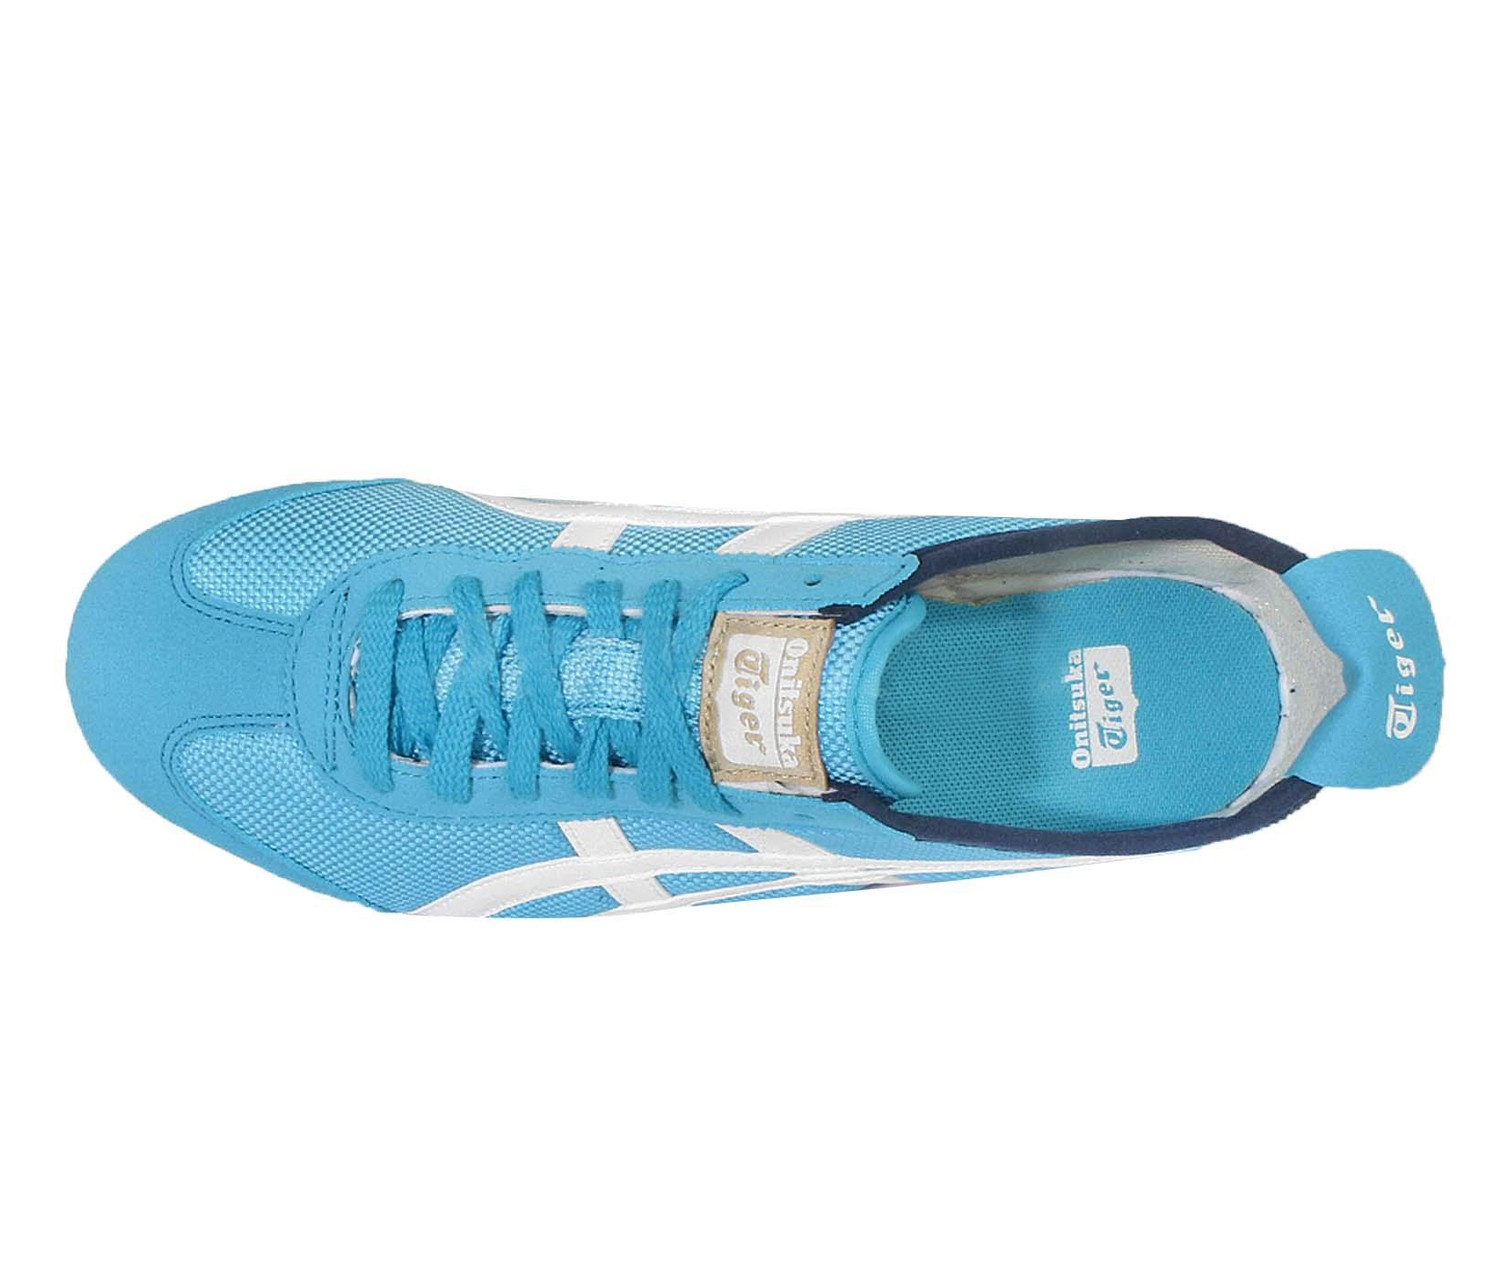 onitsuka tiger mexico 66 atomic blue